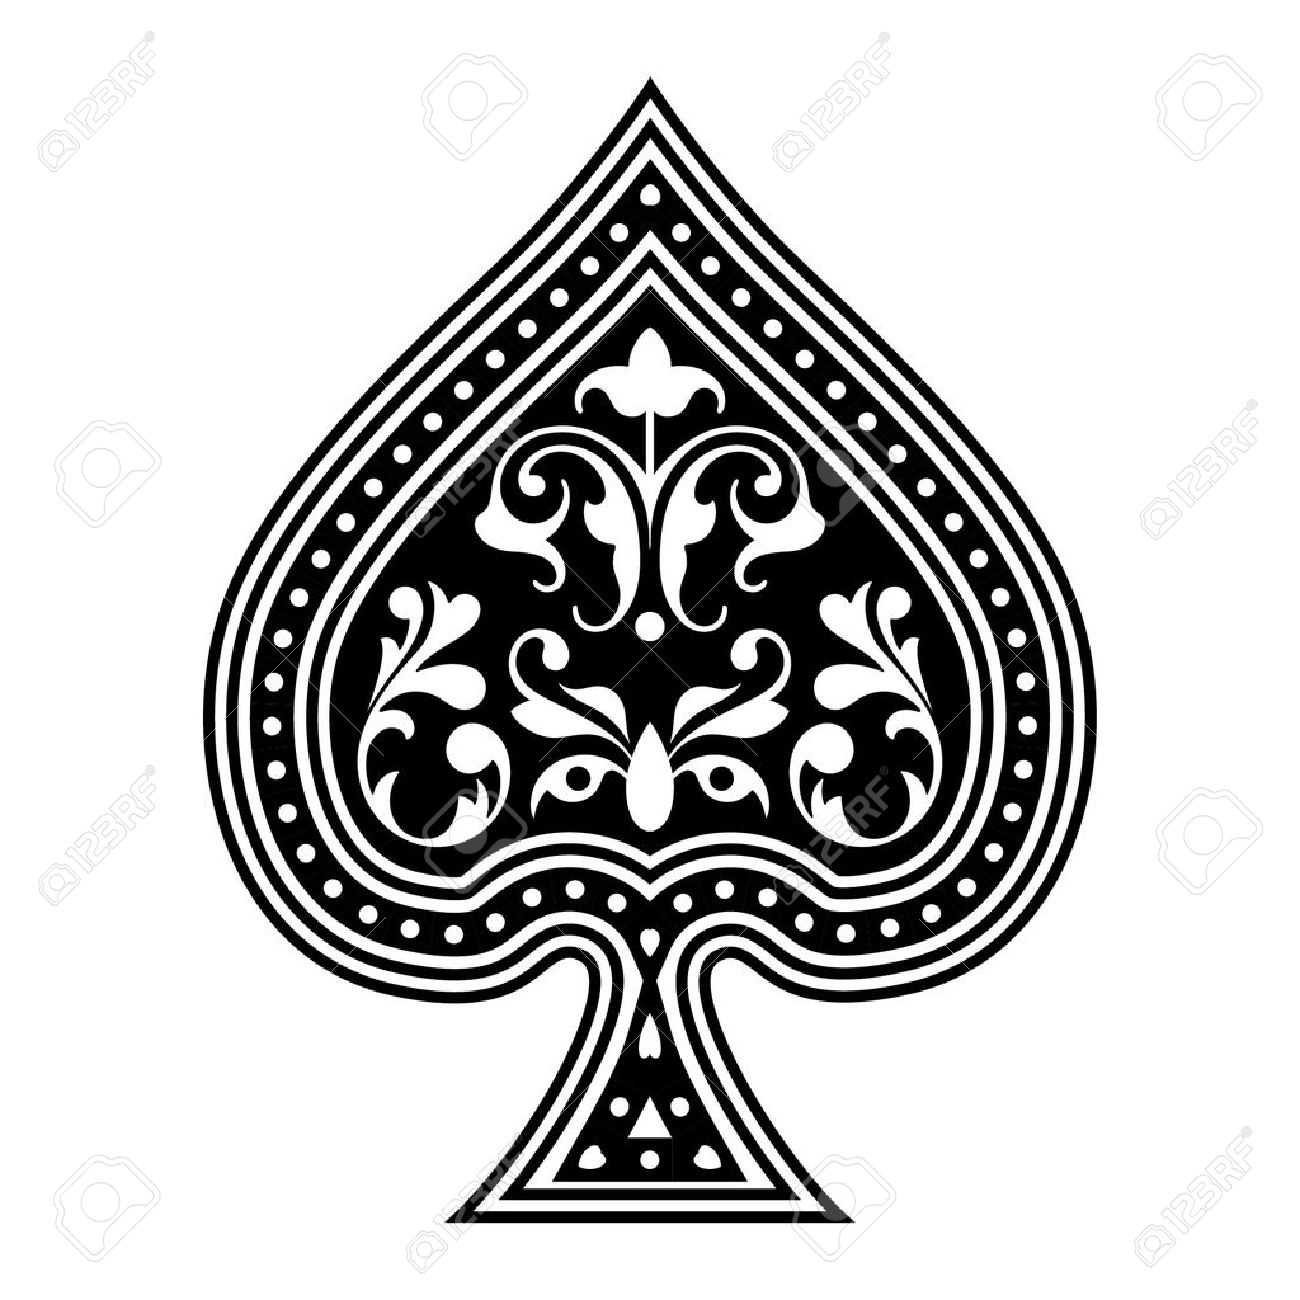 5,202 Ace Of Spades Stock Illustrations, Cliparts And Royalty Free ... image royalty free library